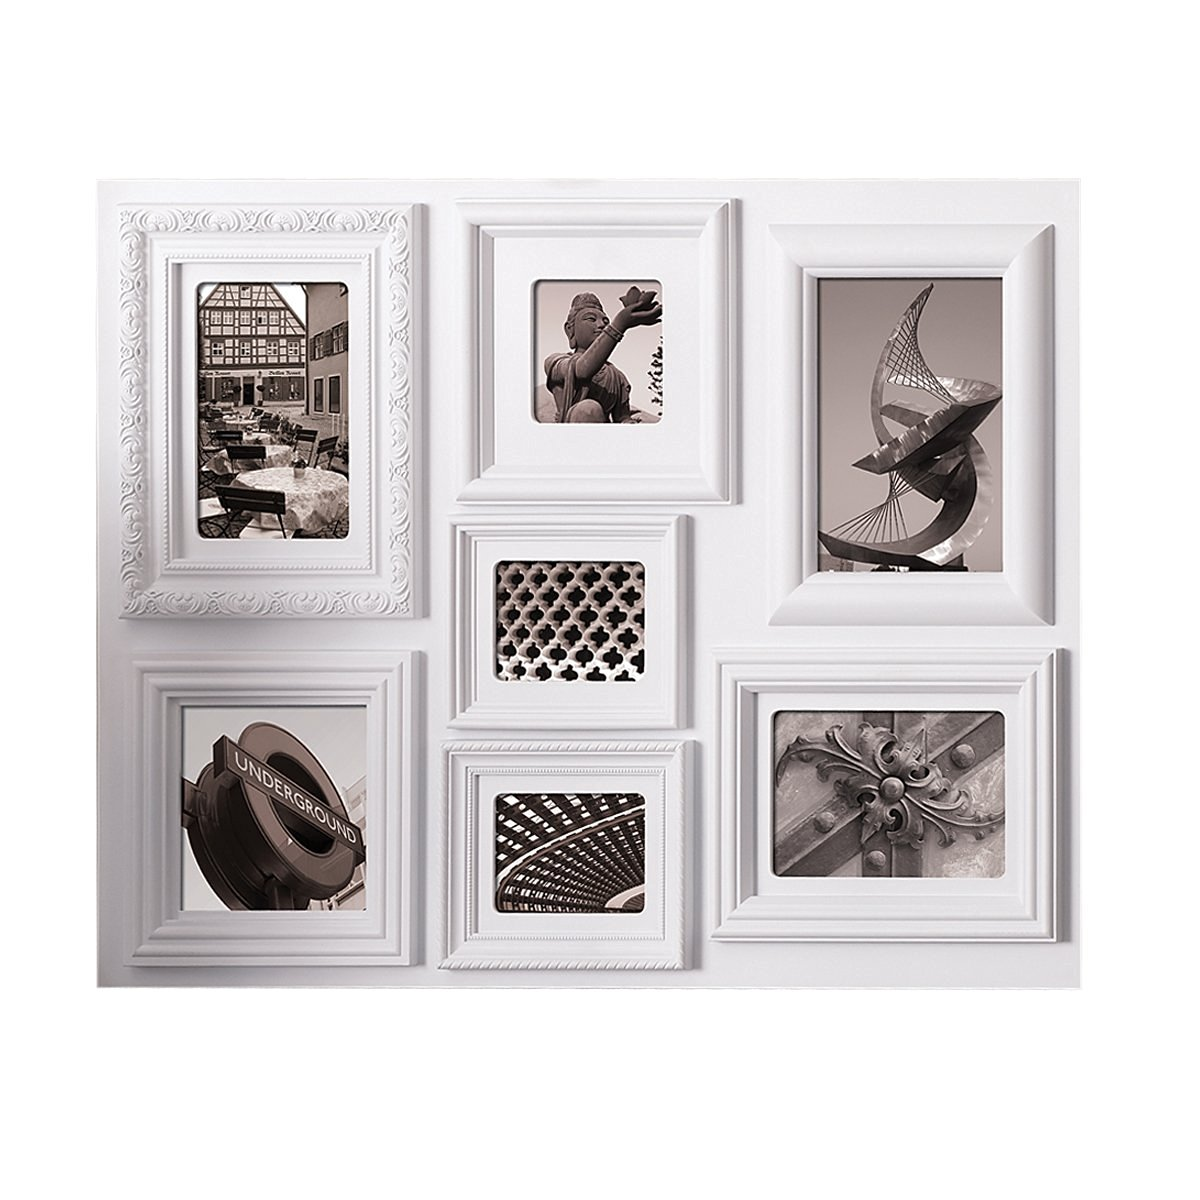 Buy Nexxt Fuse Collage Picture Frame 18 By 24 Inch 7 Opening